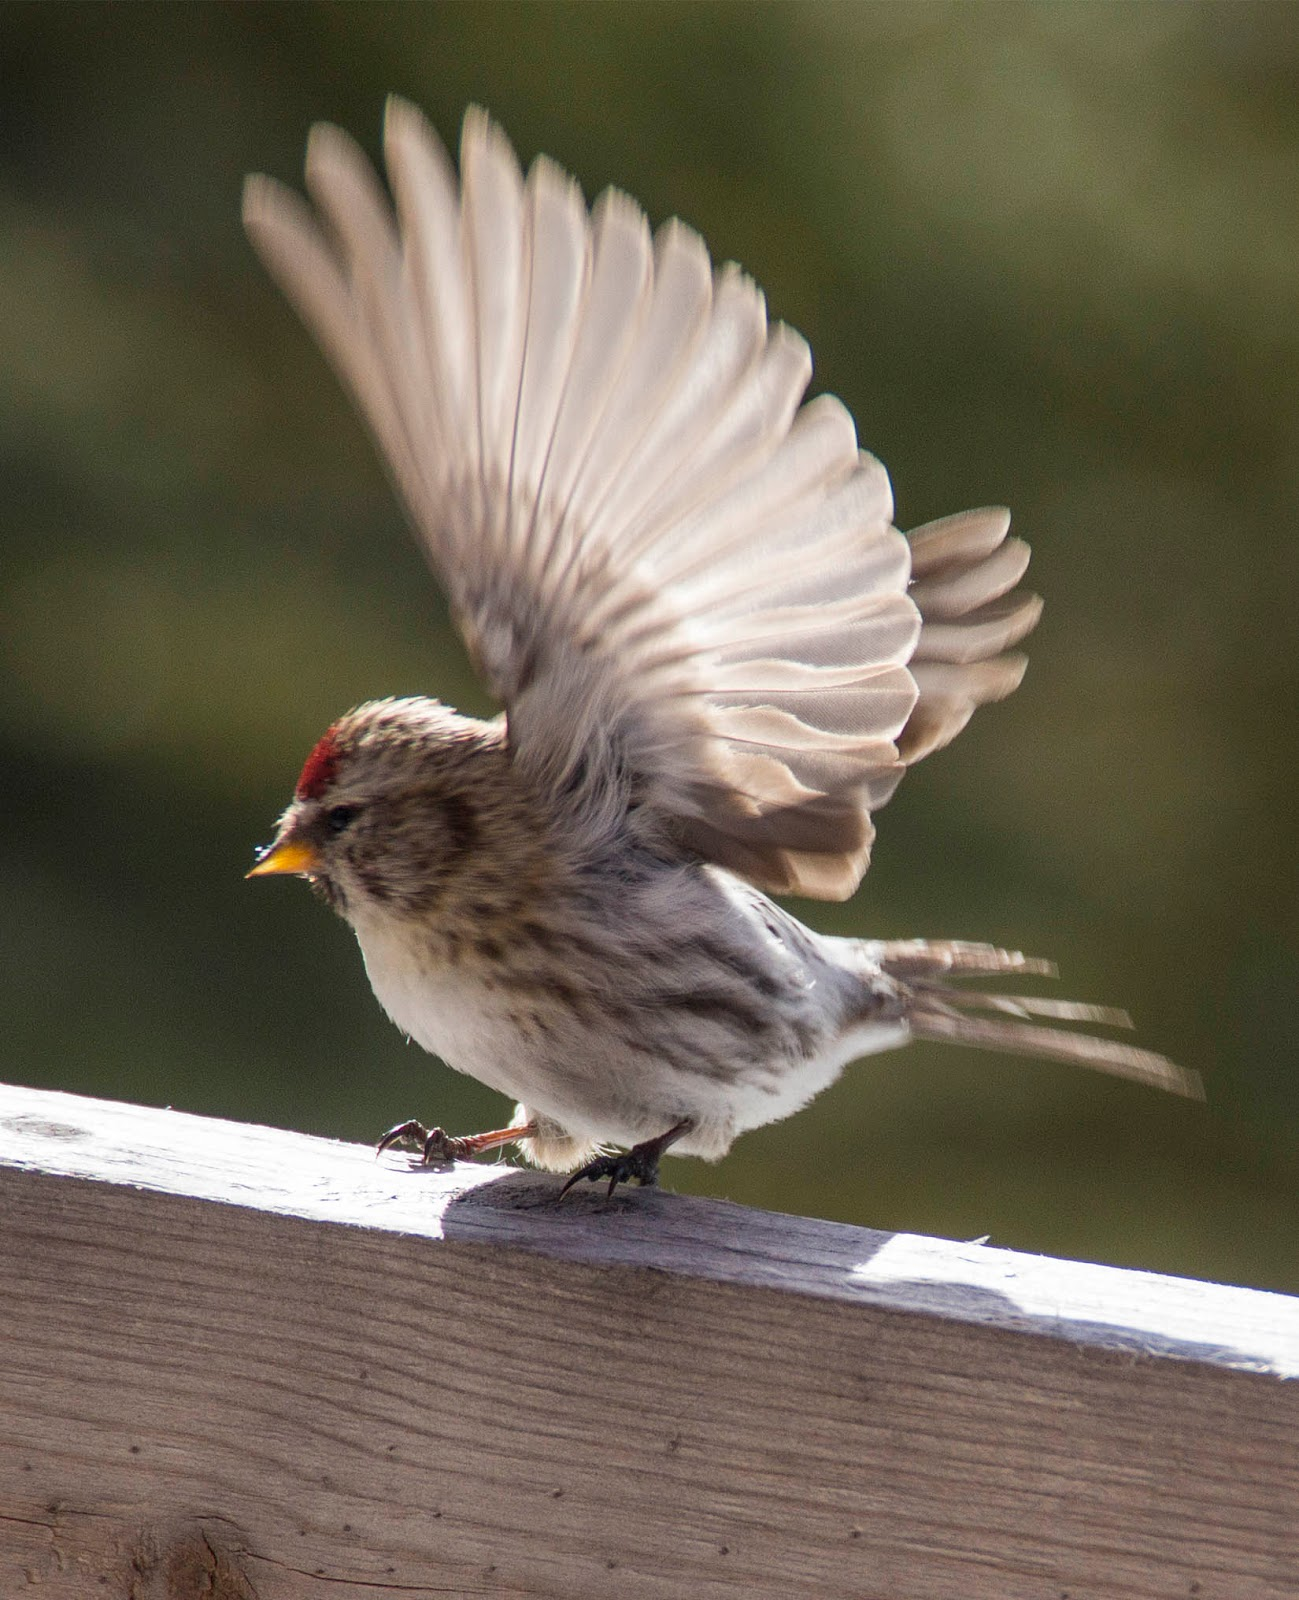 Another Winter Bird Is The Redpoll, Whose Breeding Range Is In The Arctic  Tundra They Drop Down To Canada And The Northern States In The Winter,